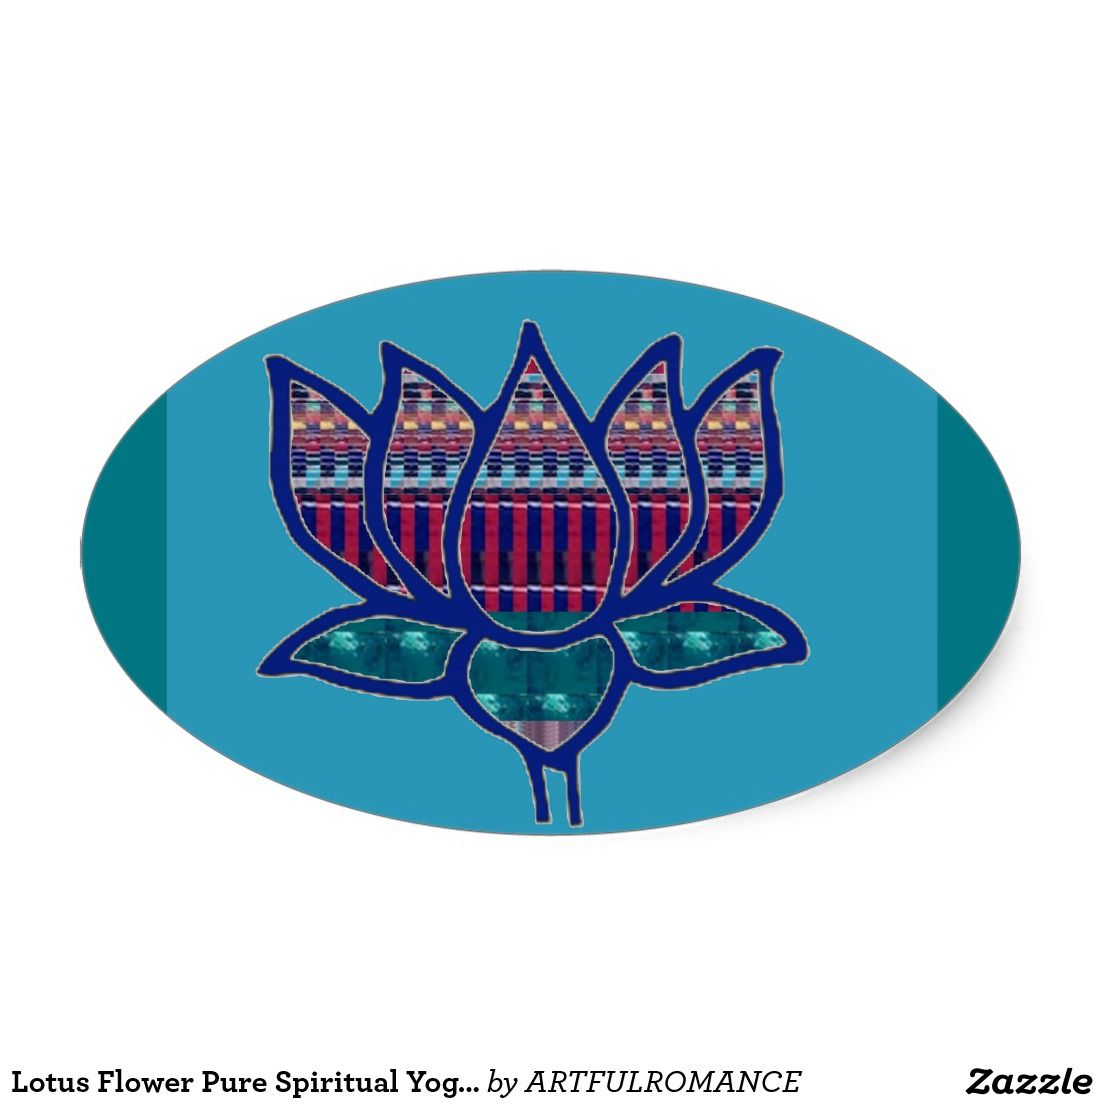 Lotus flower pure spiritual yoga meditation oval sticker 101 lotus flower pure spiritual yoga meditation oval sticker mightylinksfo